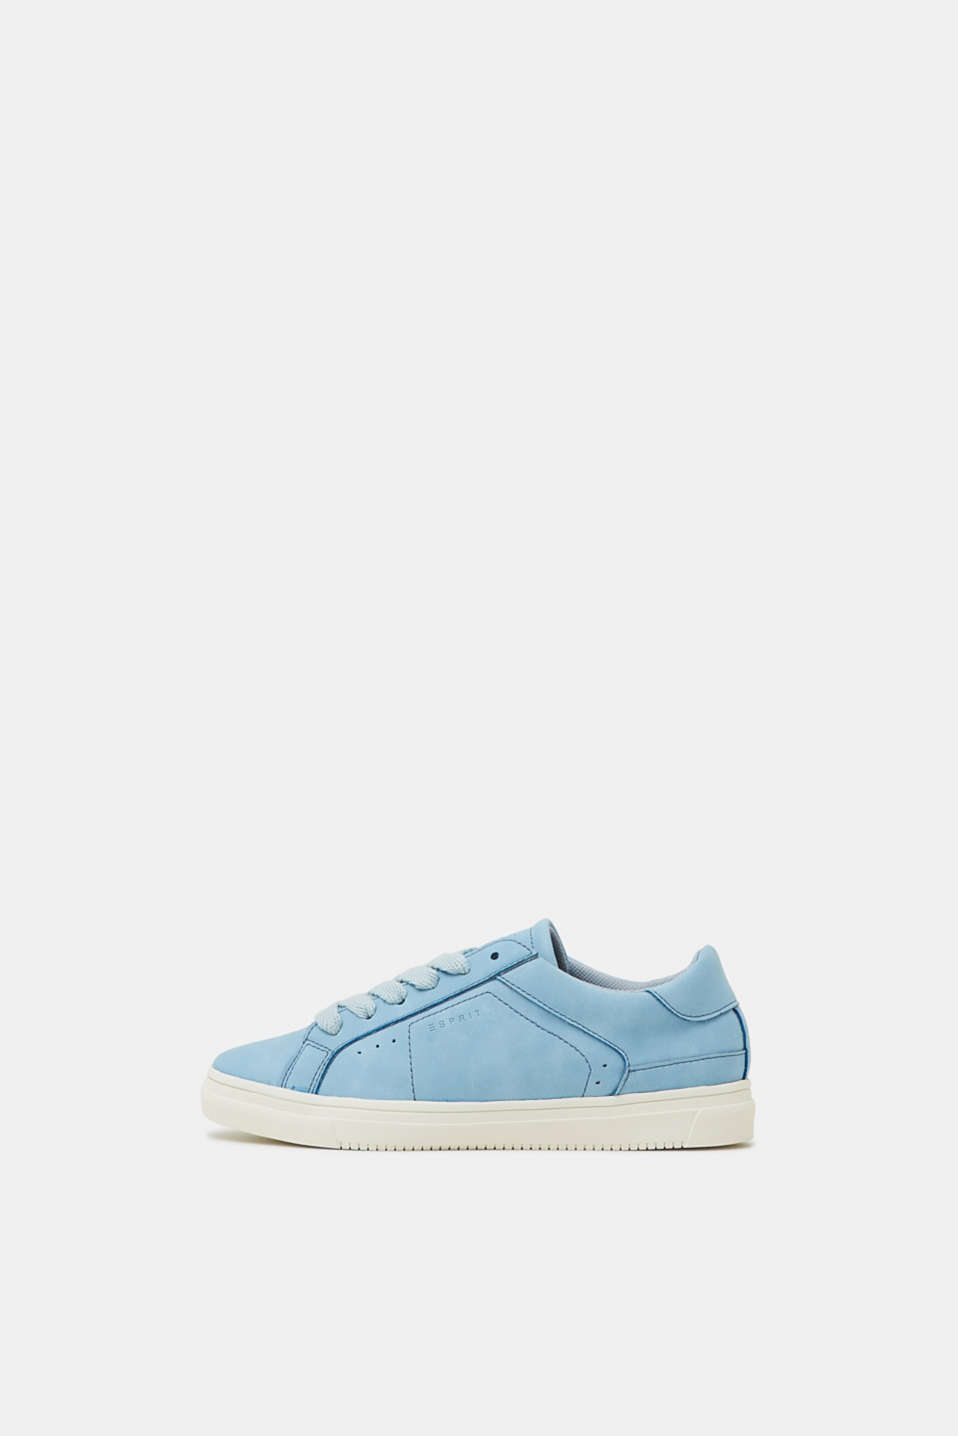 a902602aa5 Esprit : Sneakers in simil nabuk nel nostro shop on-line